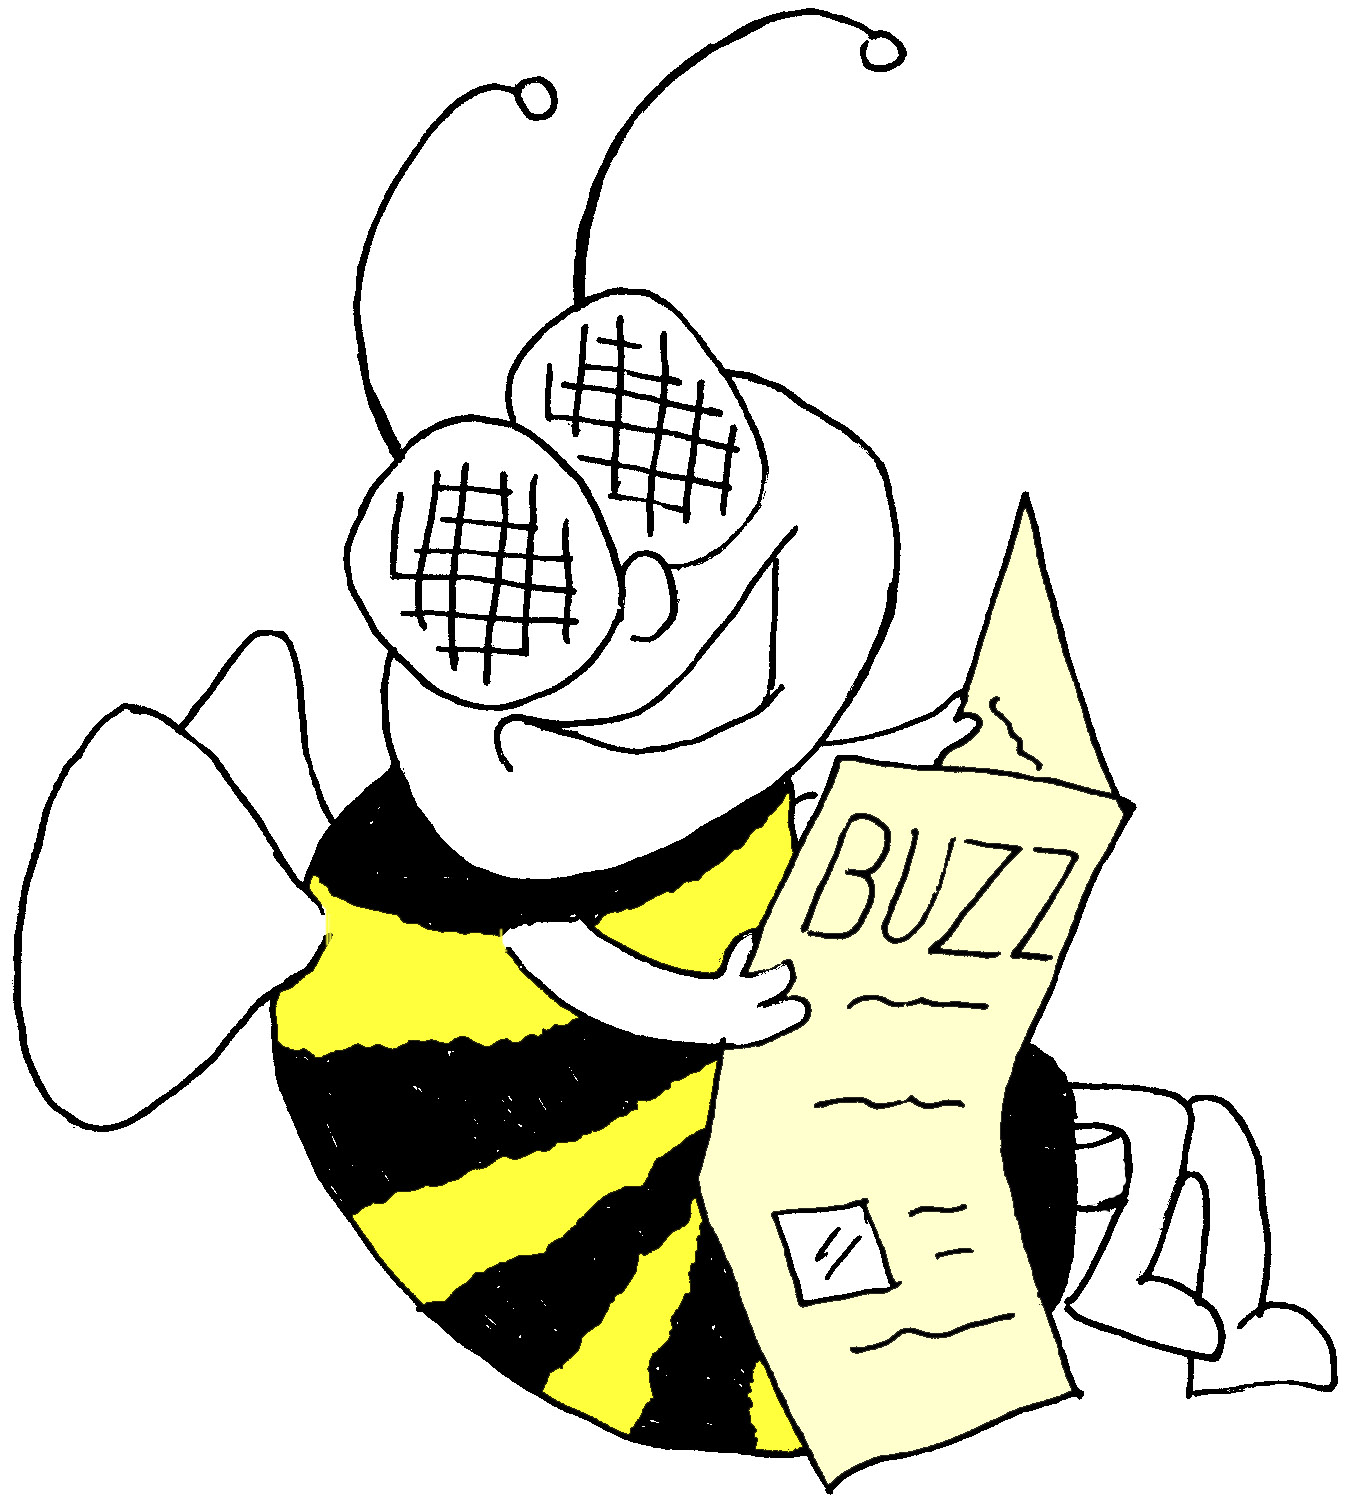 Read the latest issue of the Solway Buzz